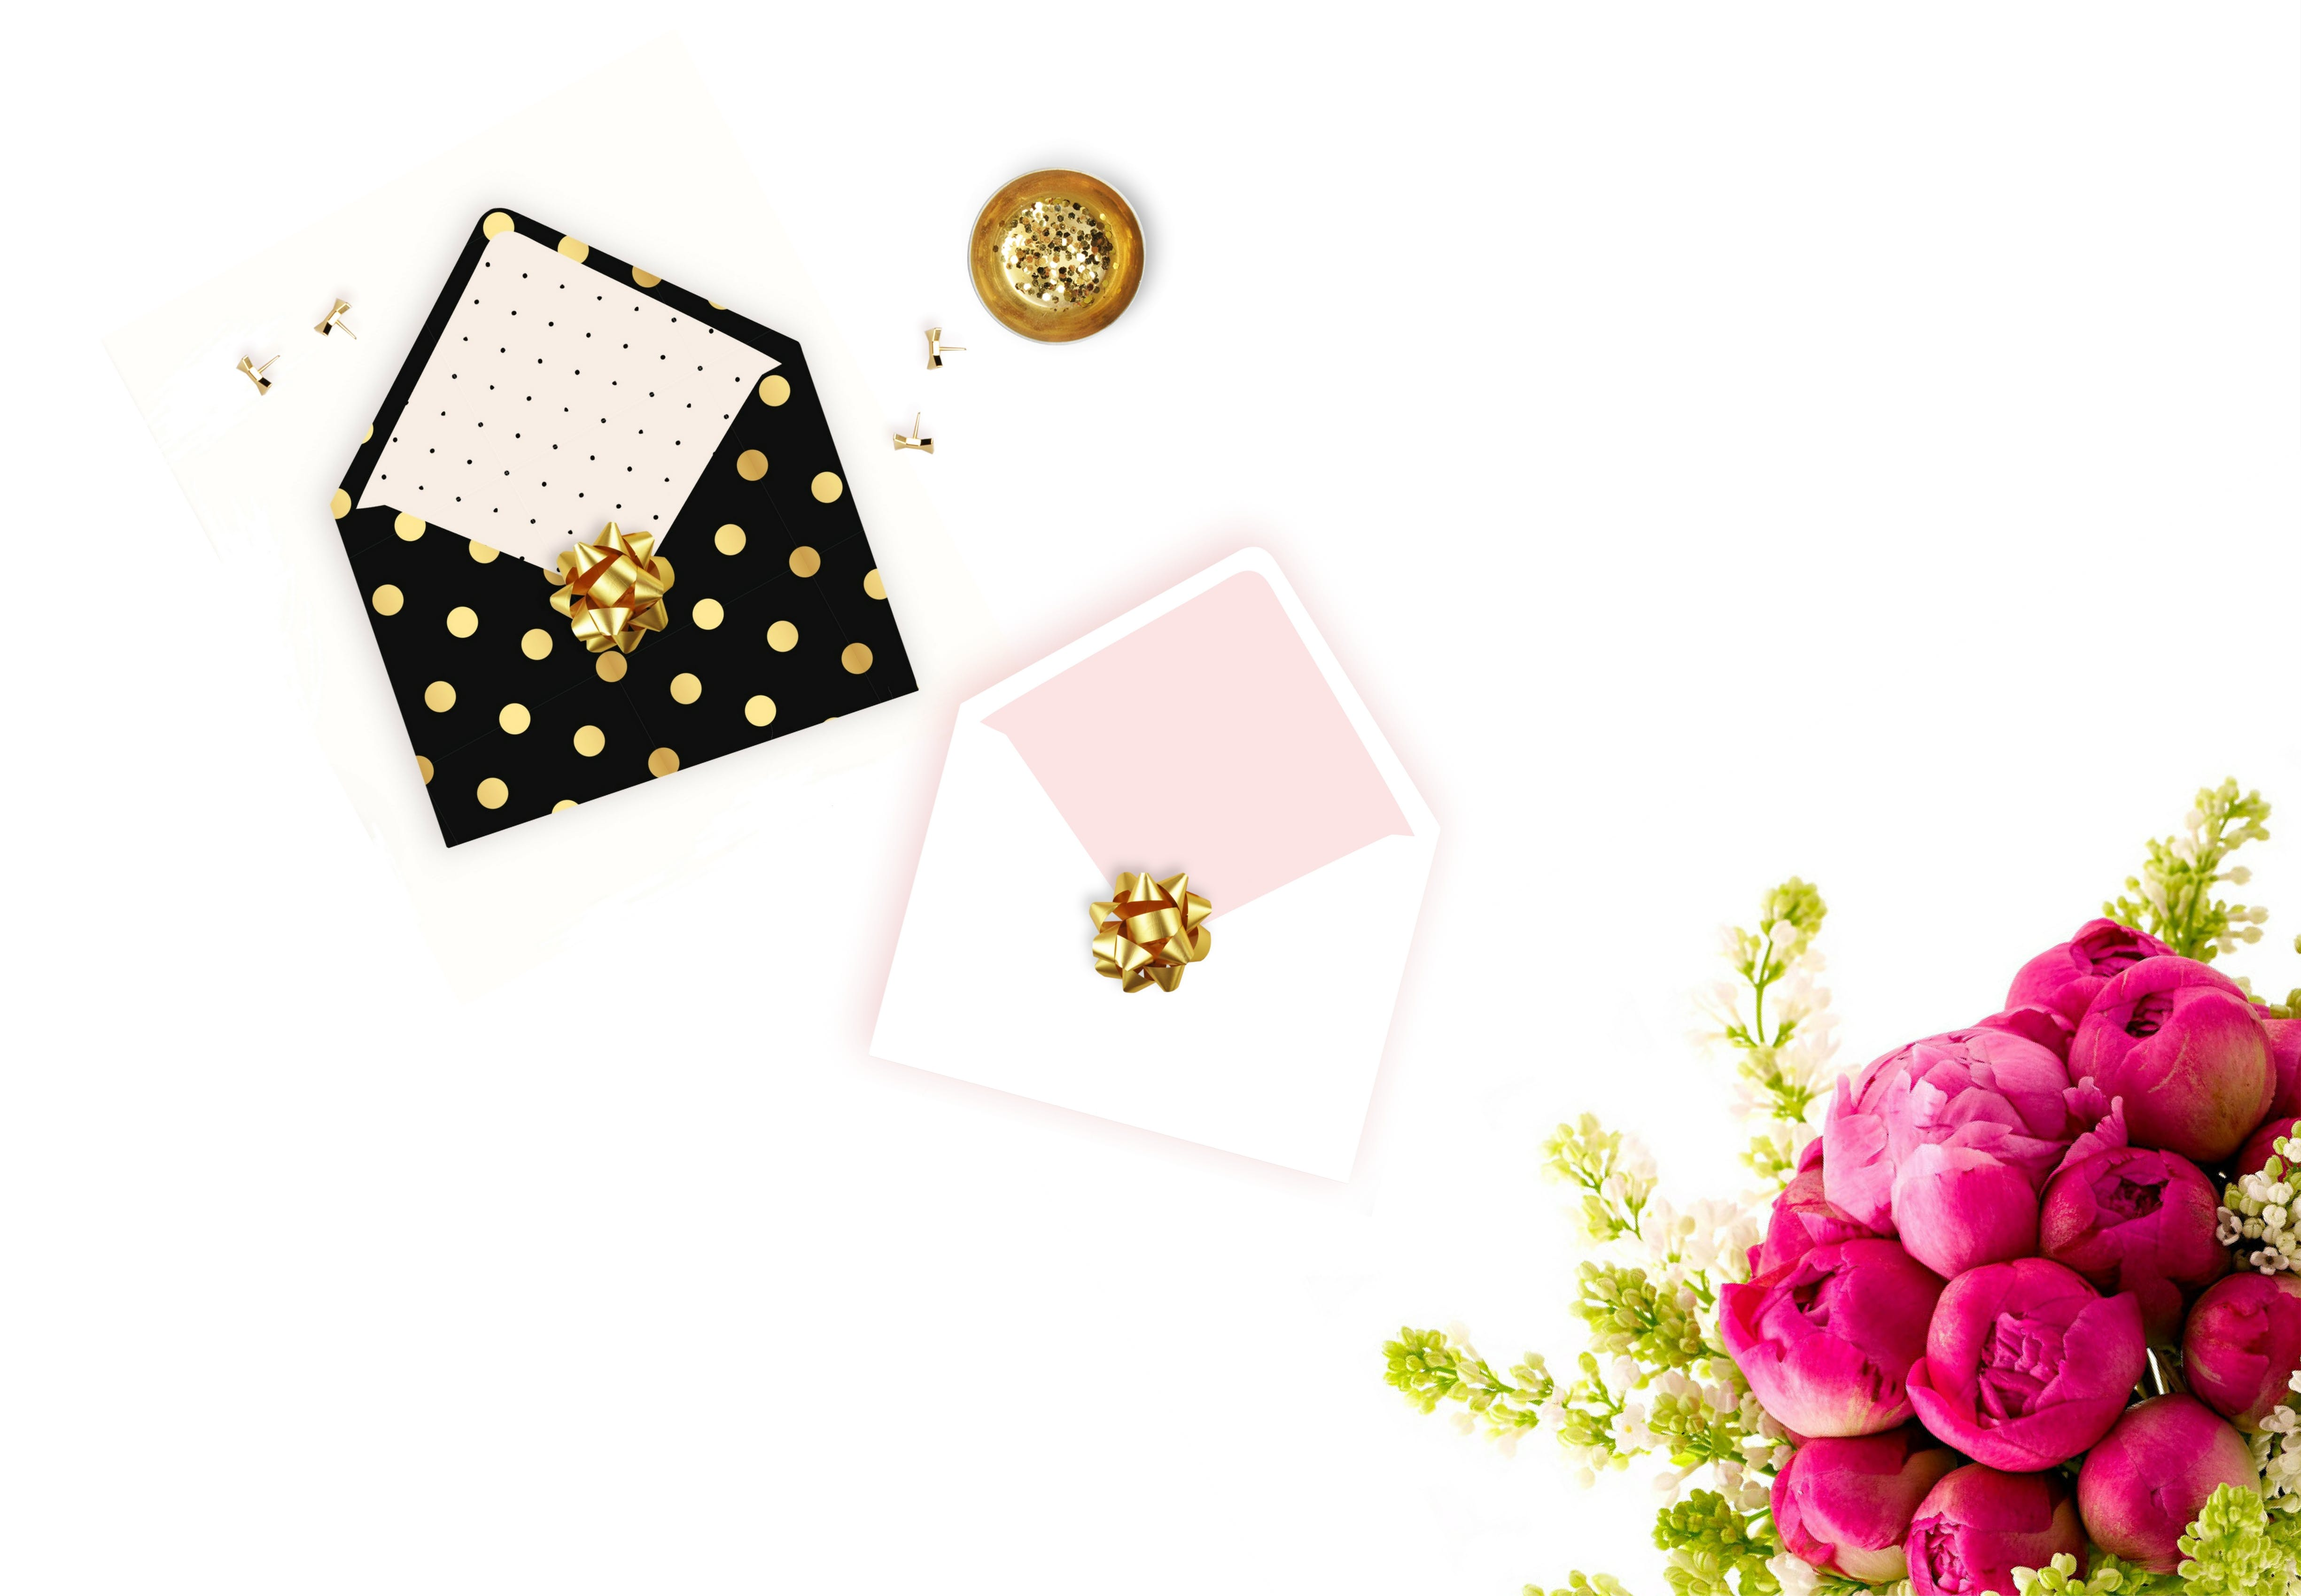 Free stock photo of flatlay, flowers, glam, pink